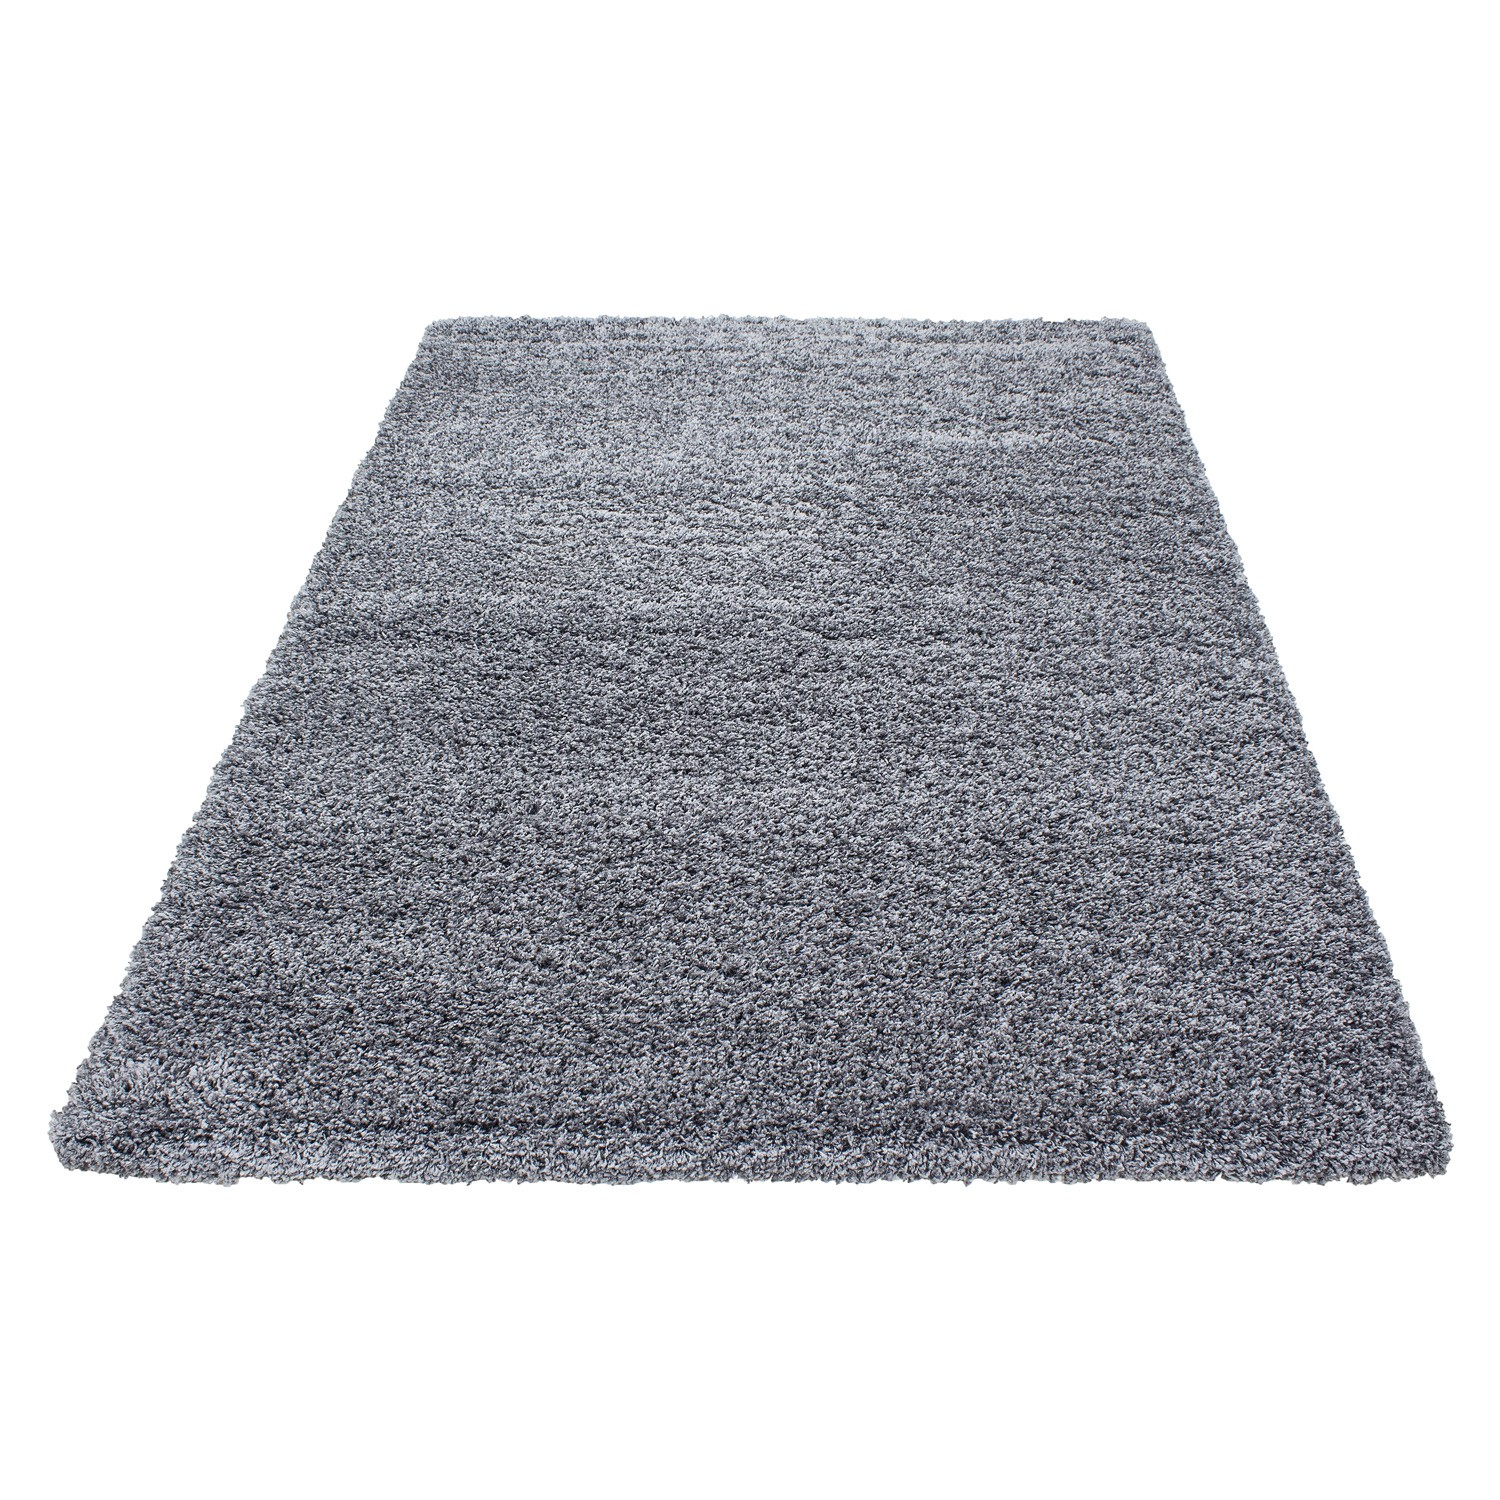 tapis shaggy gris moderne tapis design uni en. Black Bedroom Furniture Sets. Home Design Ideas